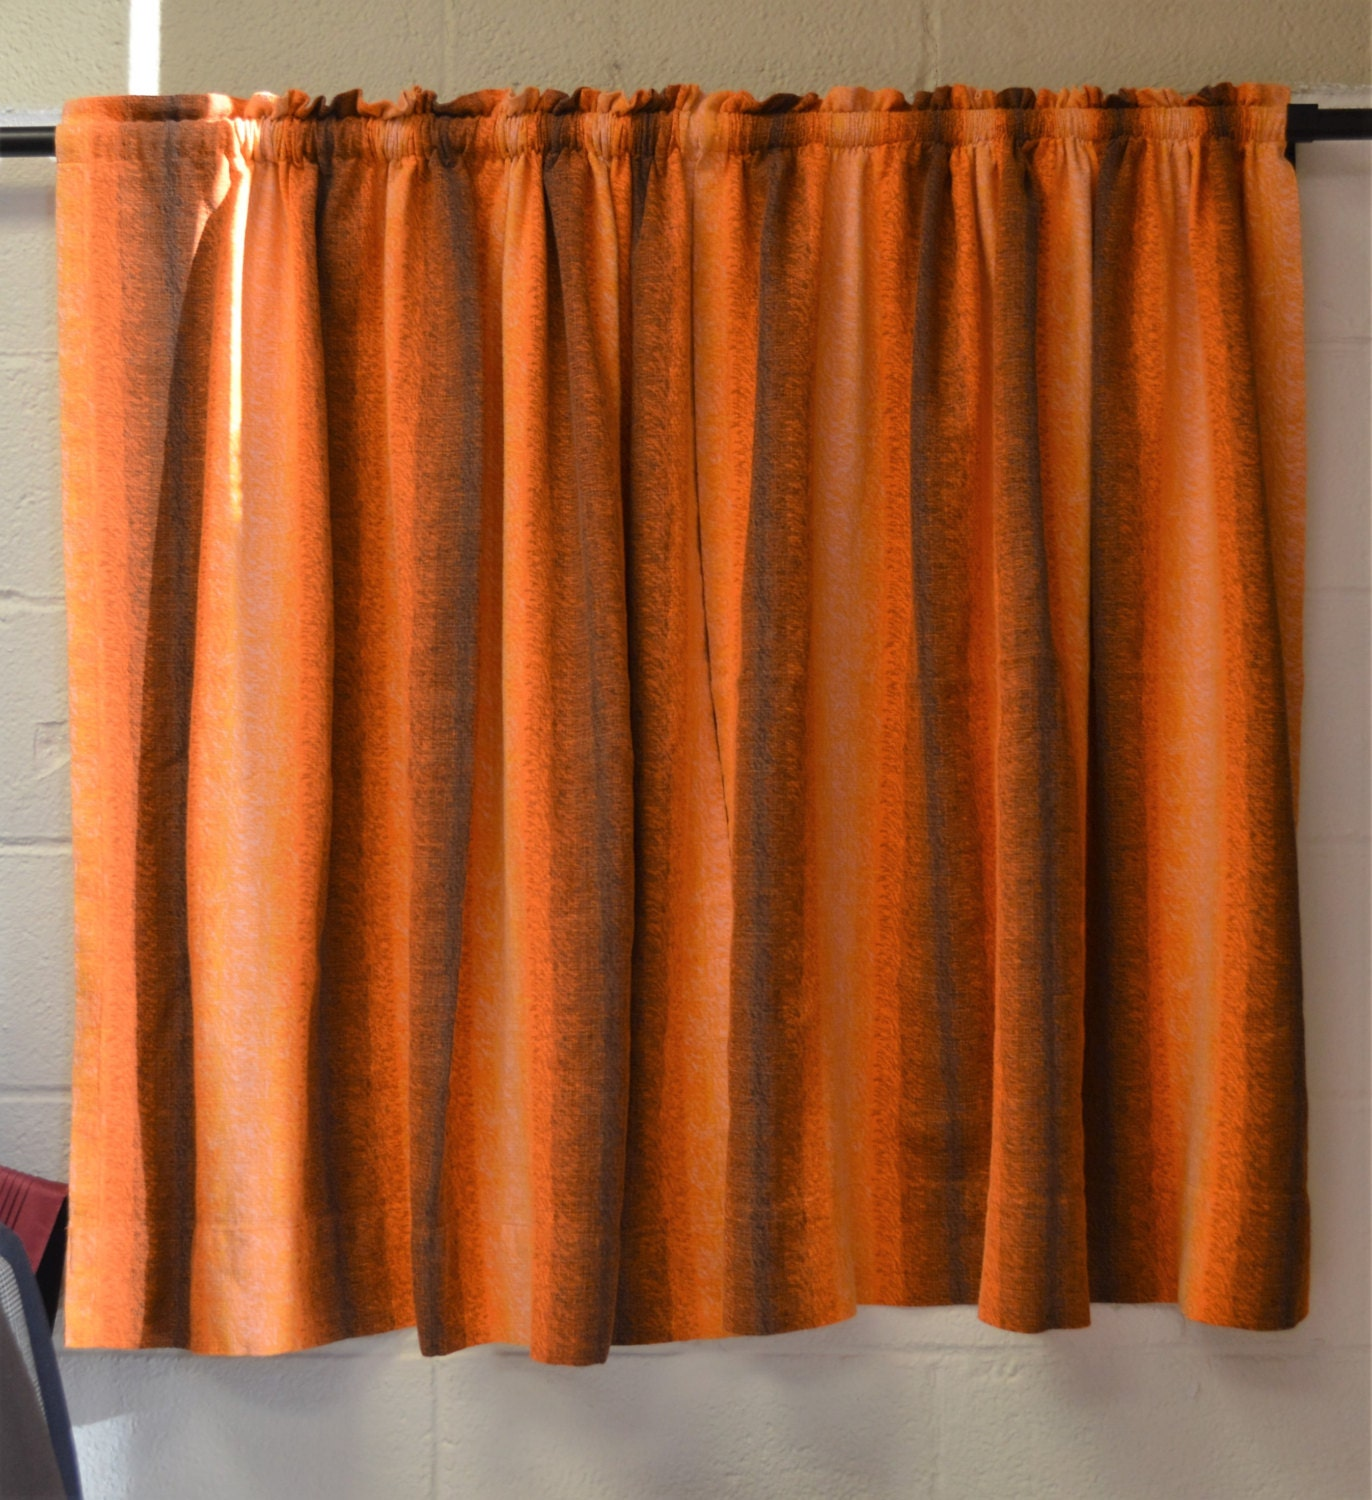 vintage curtain panels 1950s window curtains orange and brown